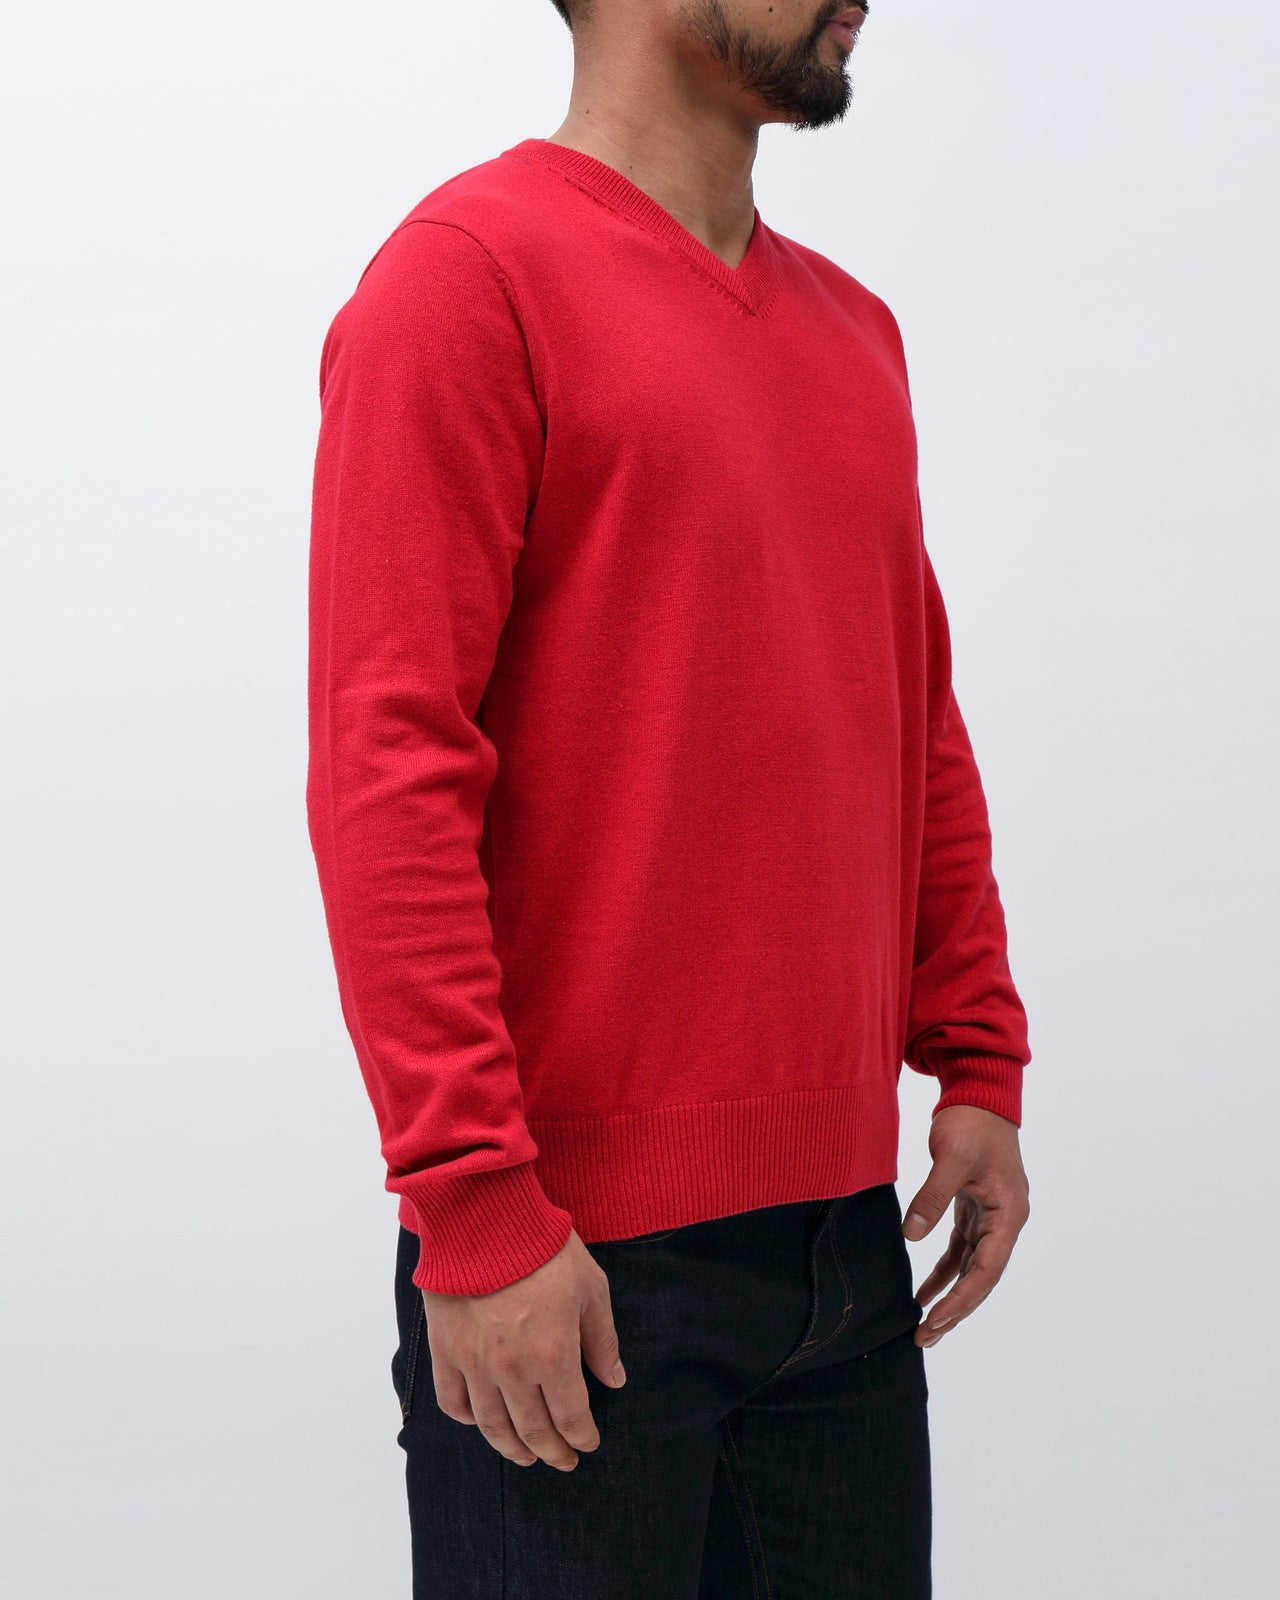 Sweater VNeck - Color: Red